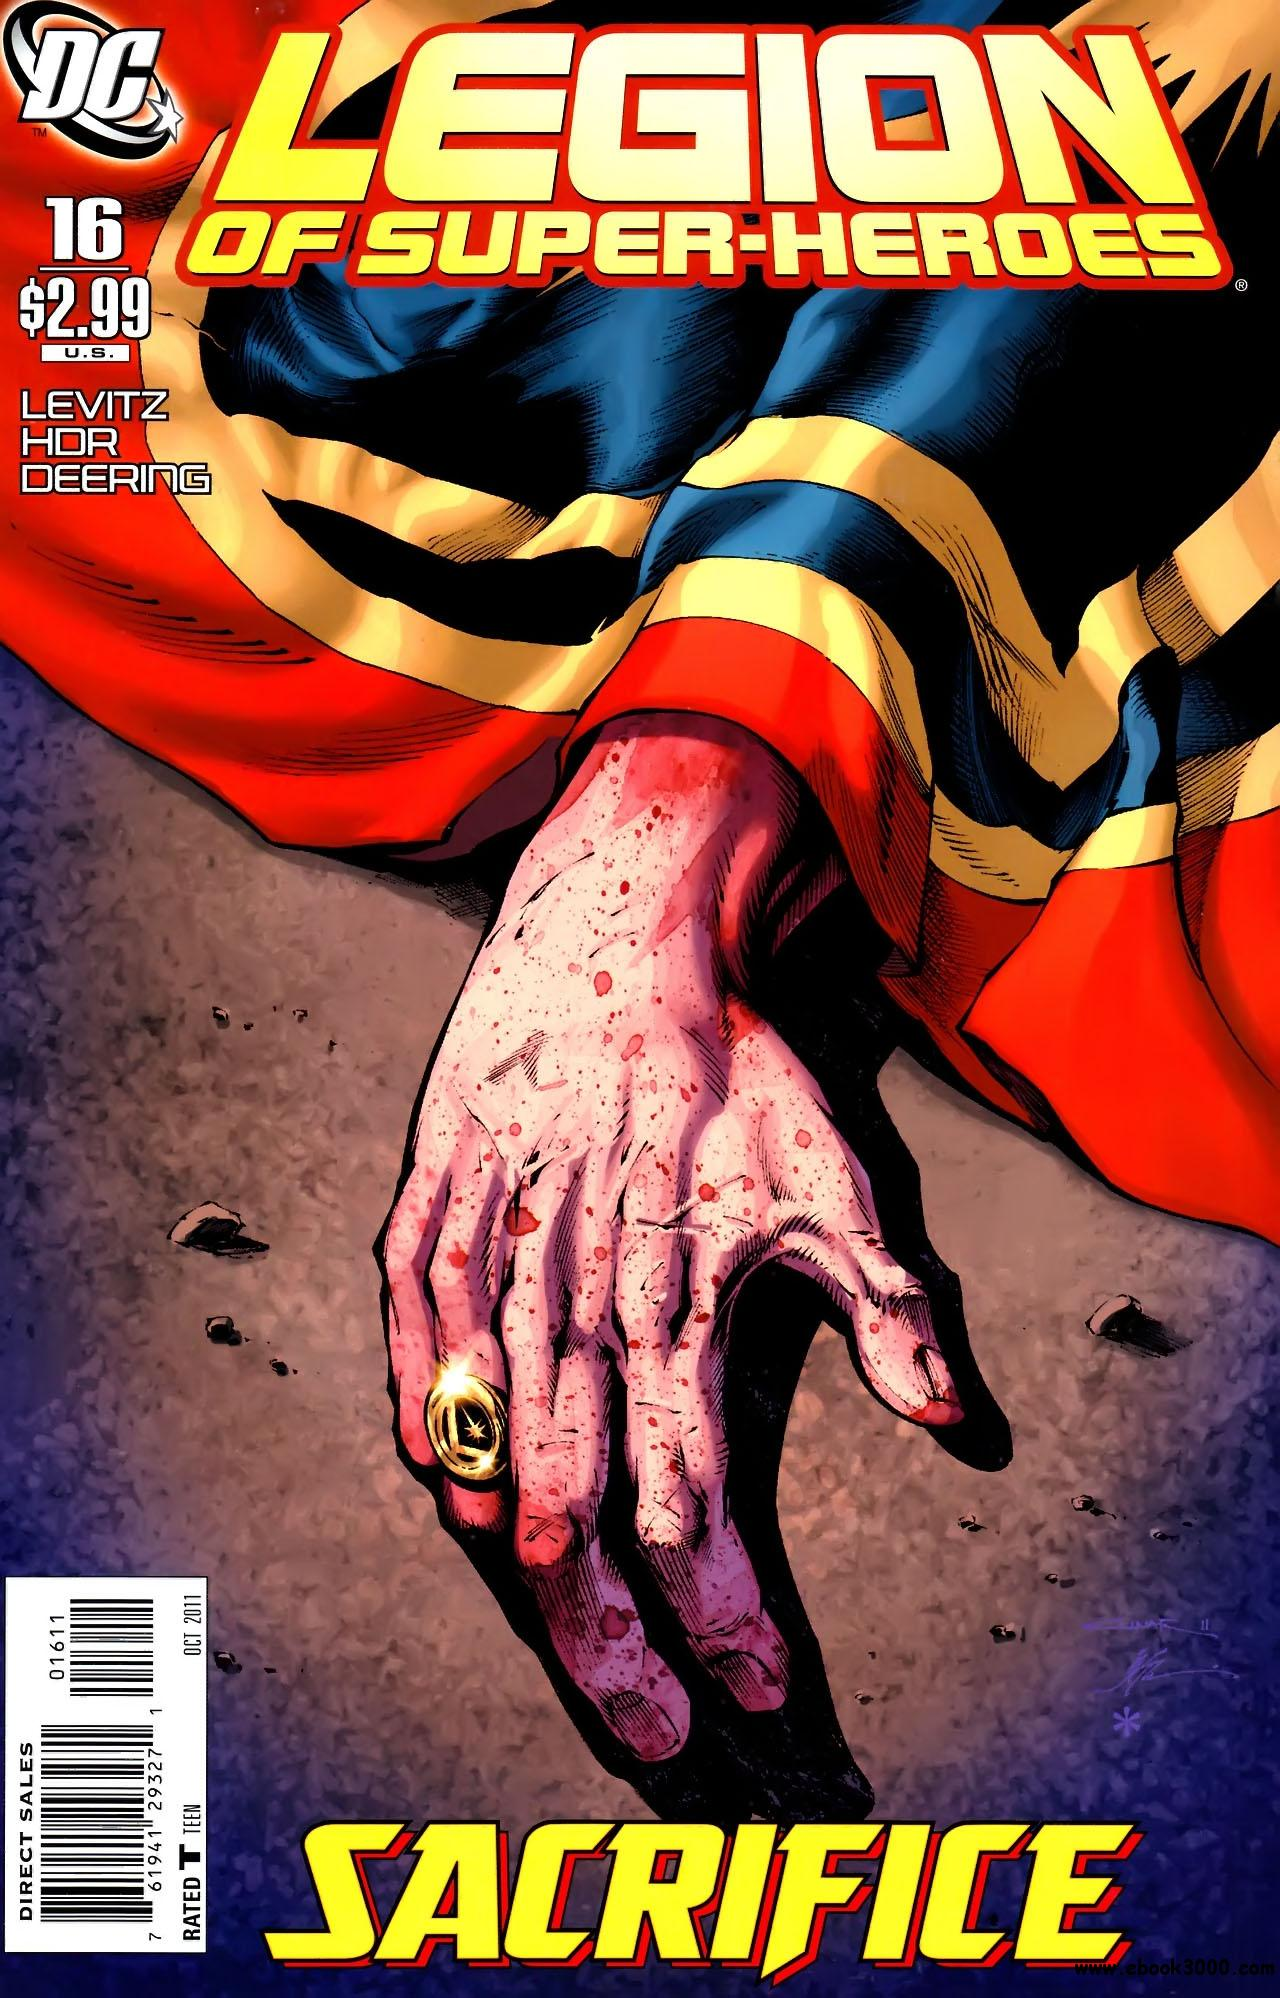 Legion of Super-Heroes #16 (2011) free download